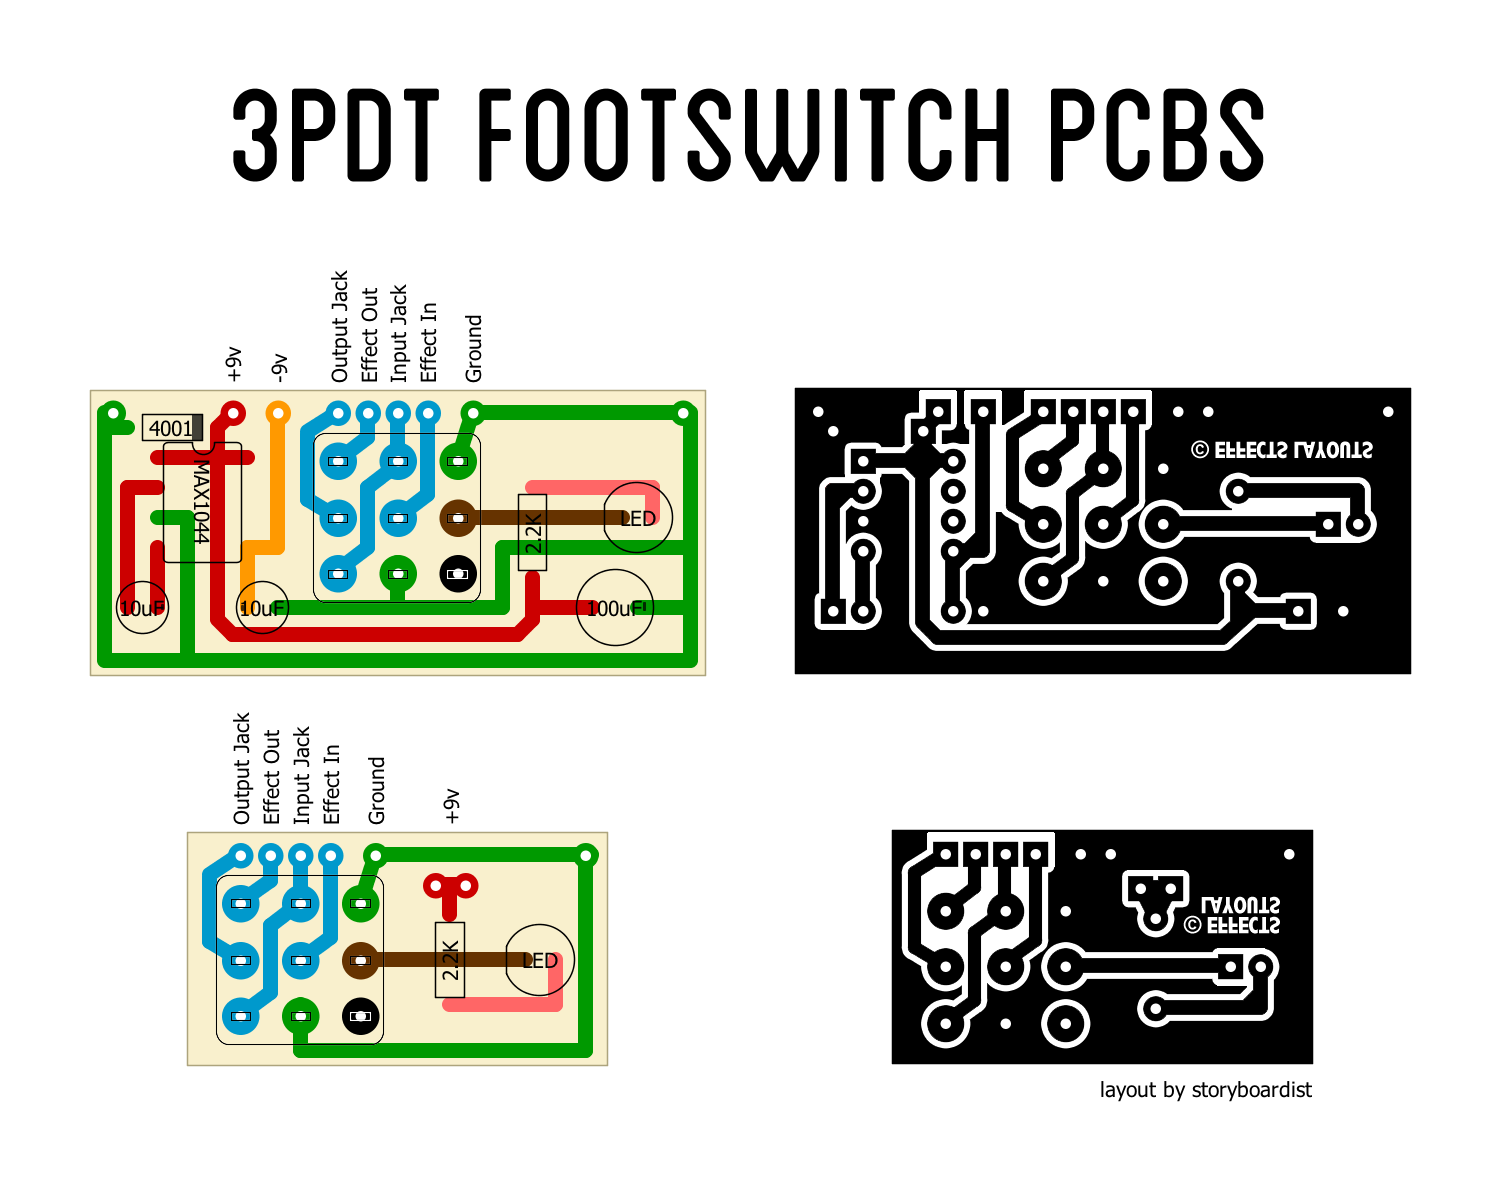 printed circuit board layout for 3pdt bypass system with max1044 based charge pump for positive ground  [ 1499 x 1199 Pixel ]